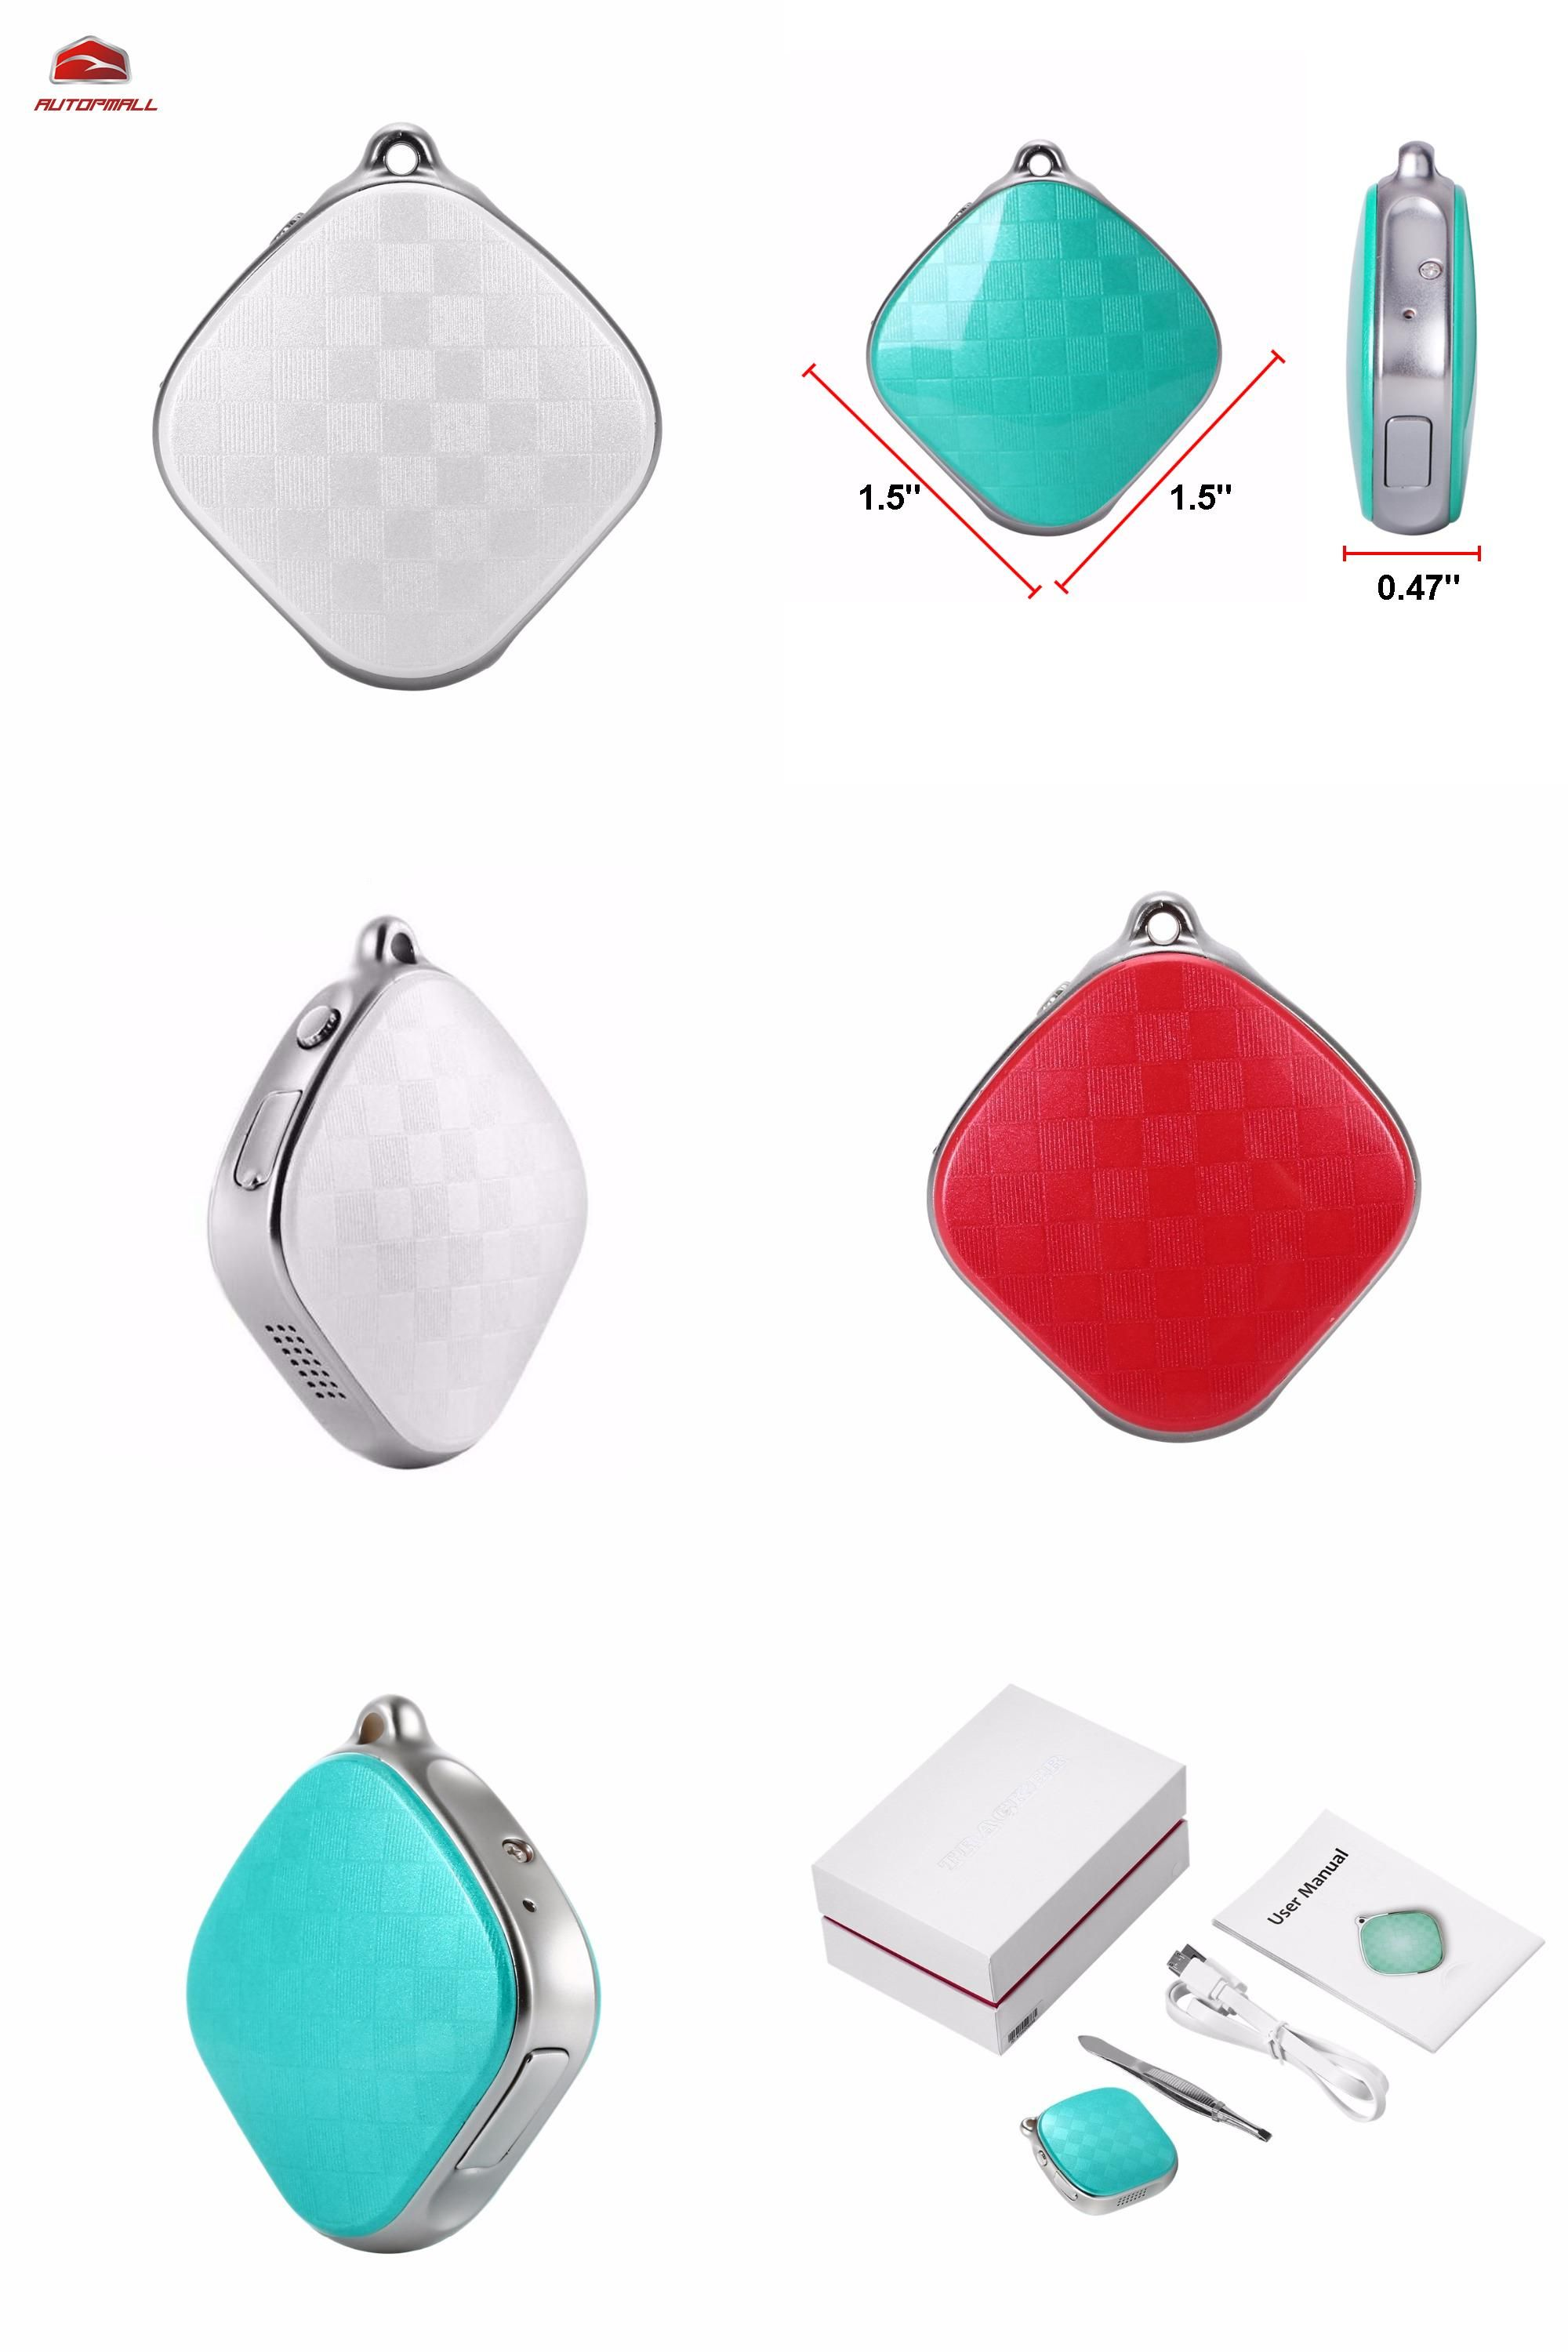 Jewelry Tracking Device : jewelry, tracking, device, Visit, Micro, Tracker, Locator, Children, Tracking, Device, Standby, Alar…, Tracker,, Wearable, Tech,